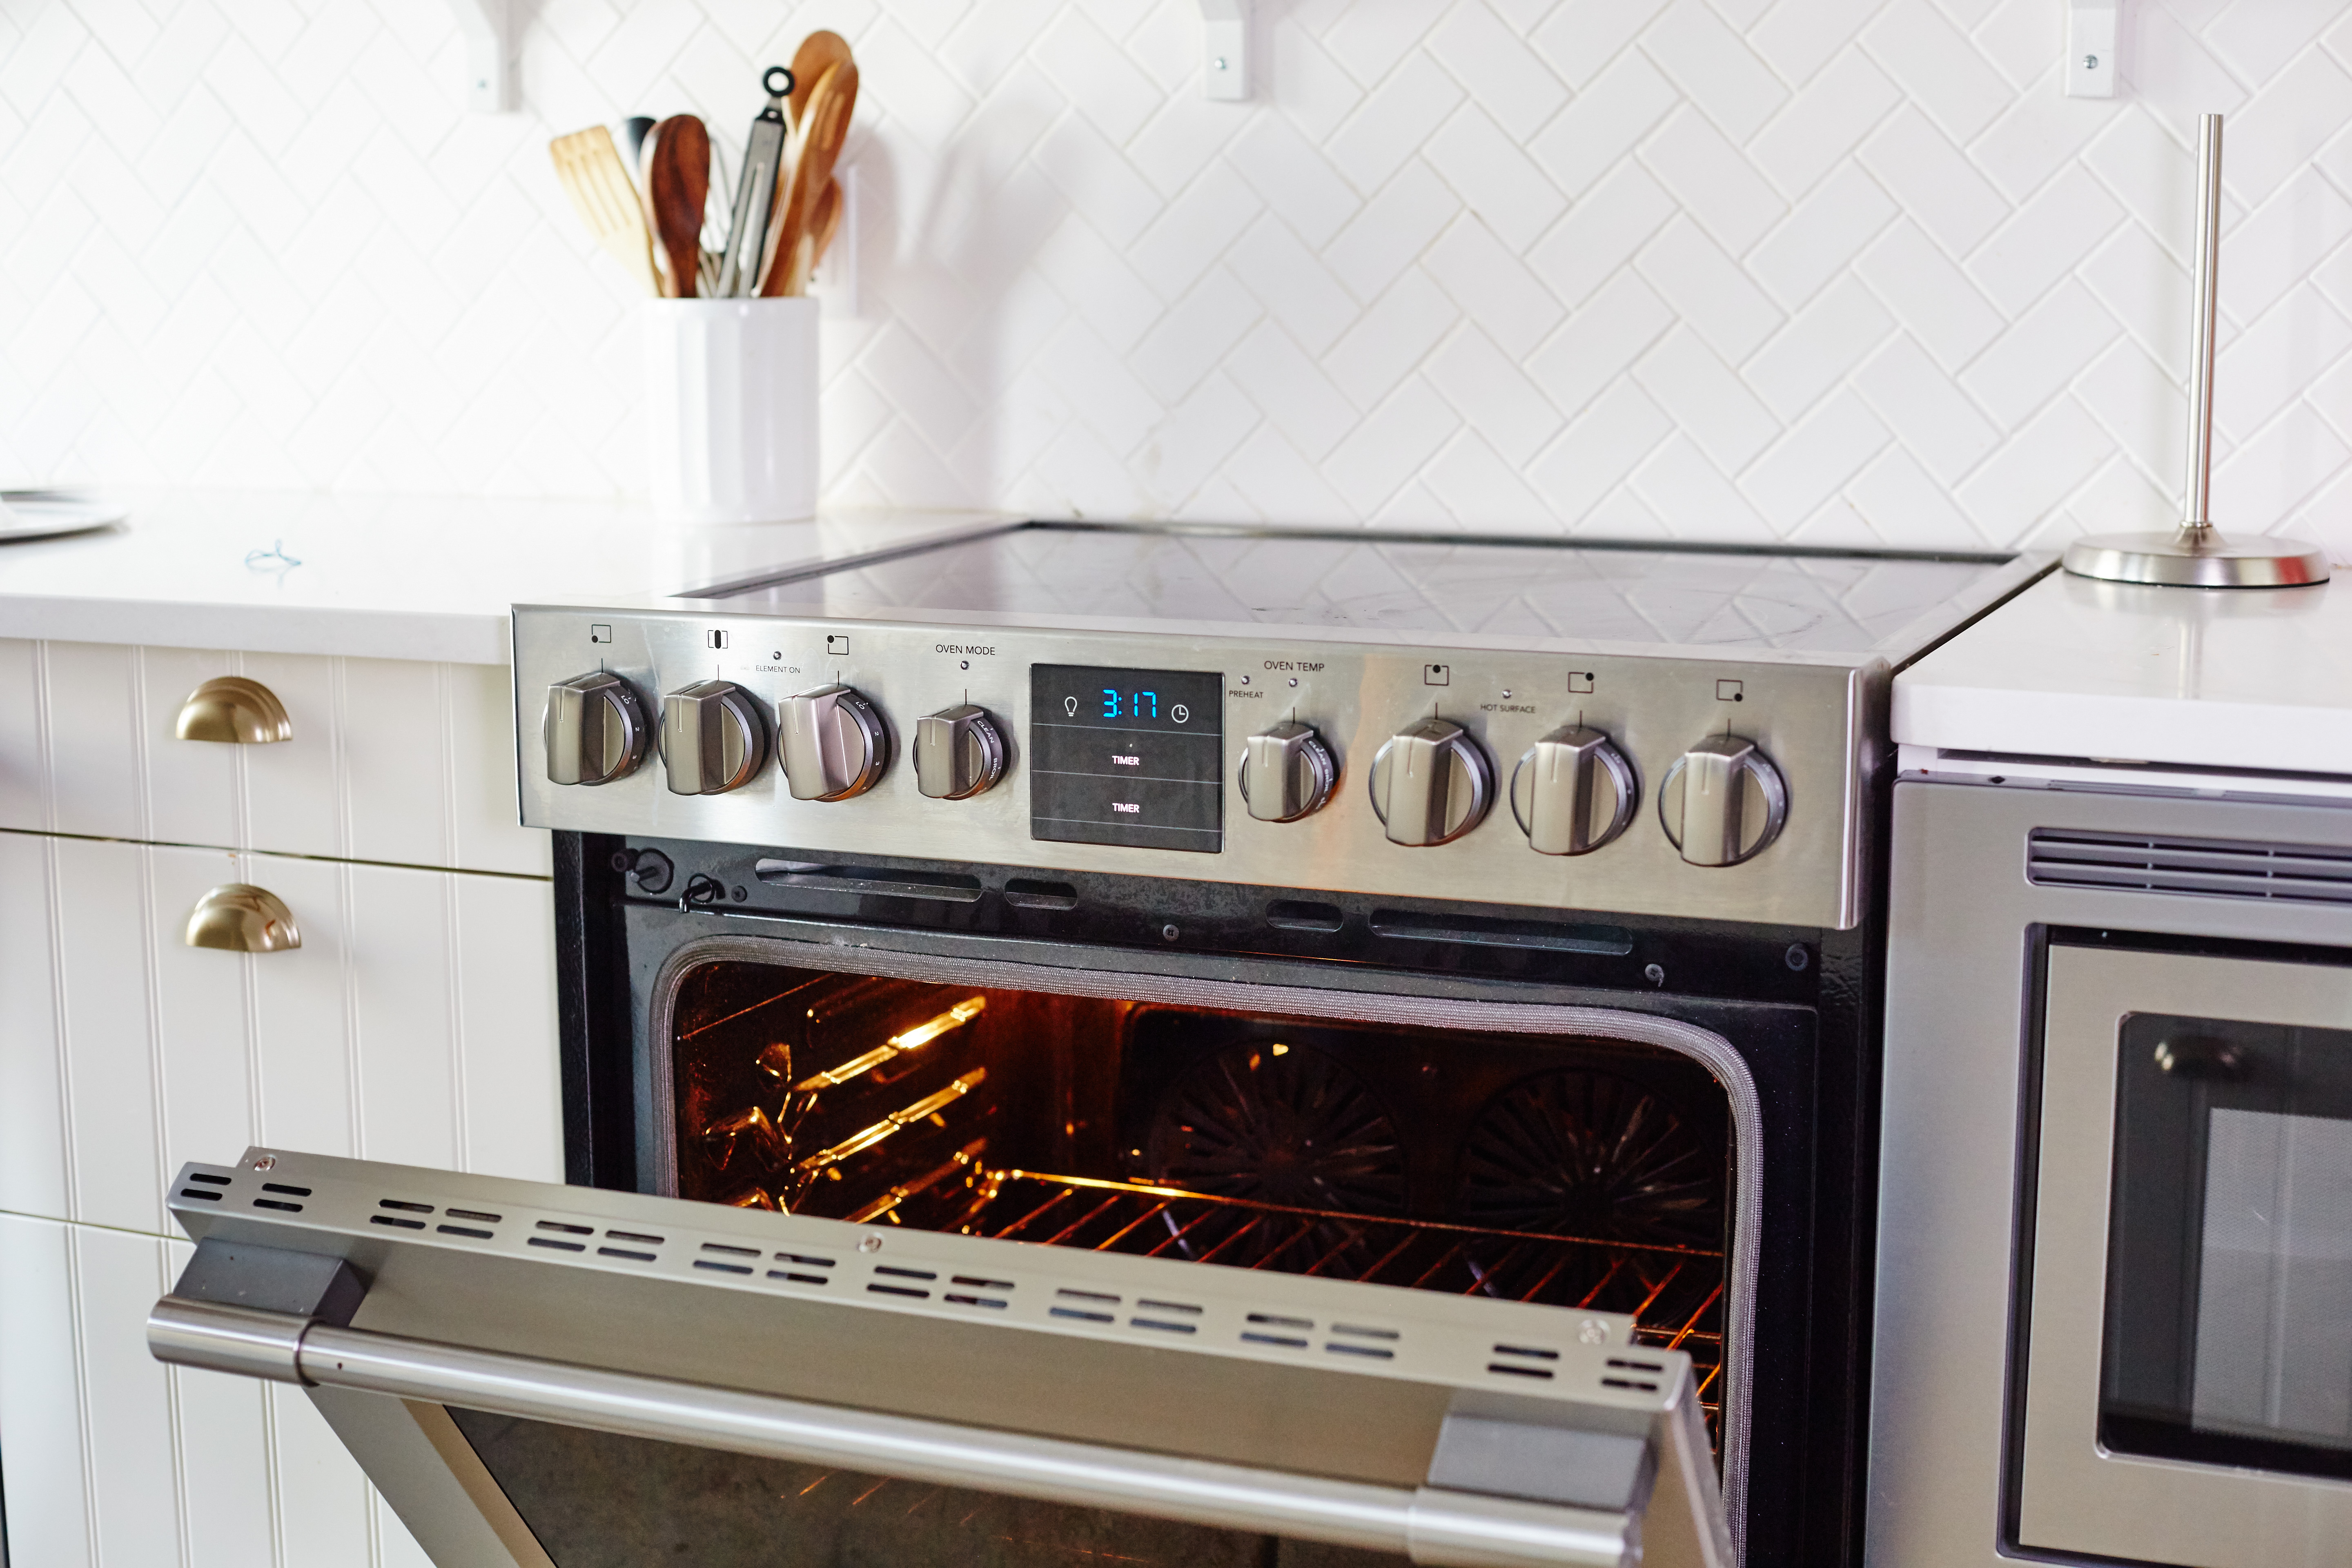 How To Clean An Oven With Baking Soda And Vinegar